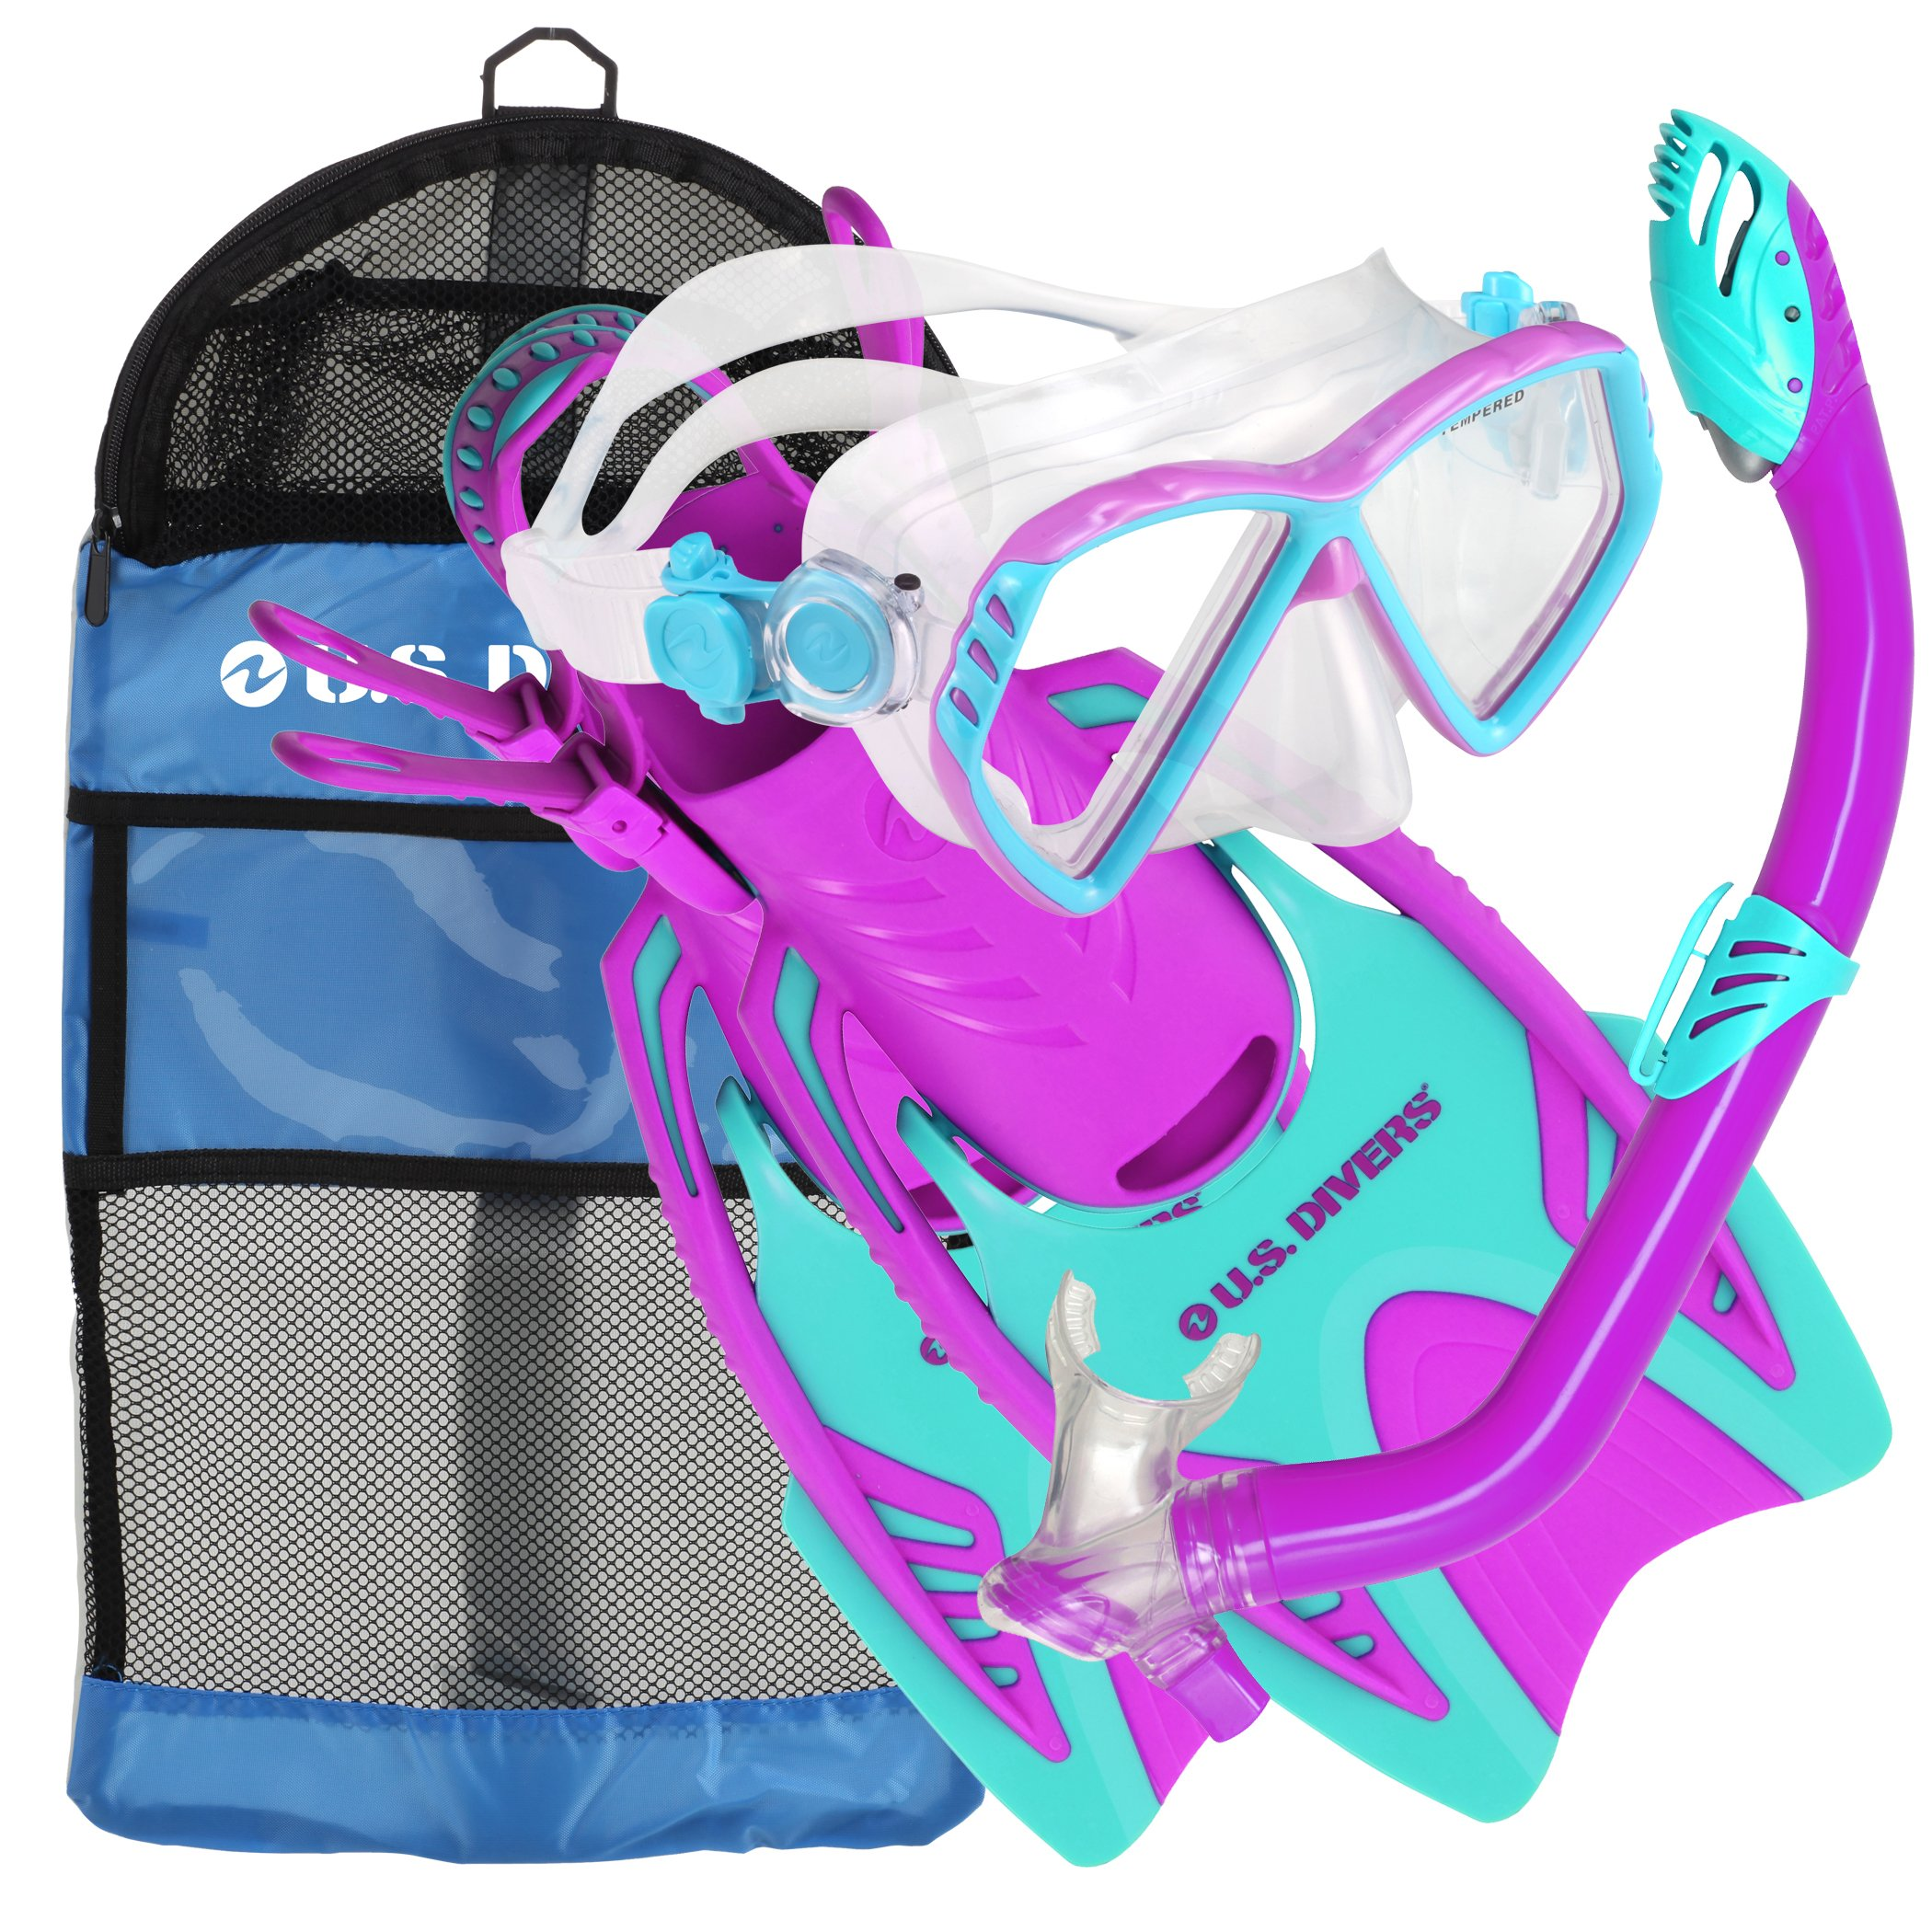 U.S. Divers Junior Regal Mask, Trigger Fins and Laguna Snorkel Combo Set, Fun Purple, Large/X-Large by U.S. Divers